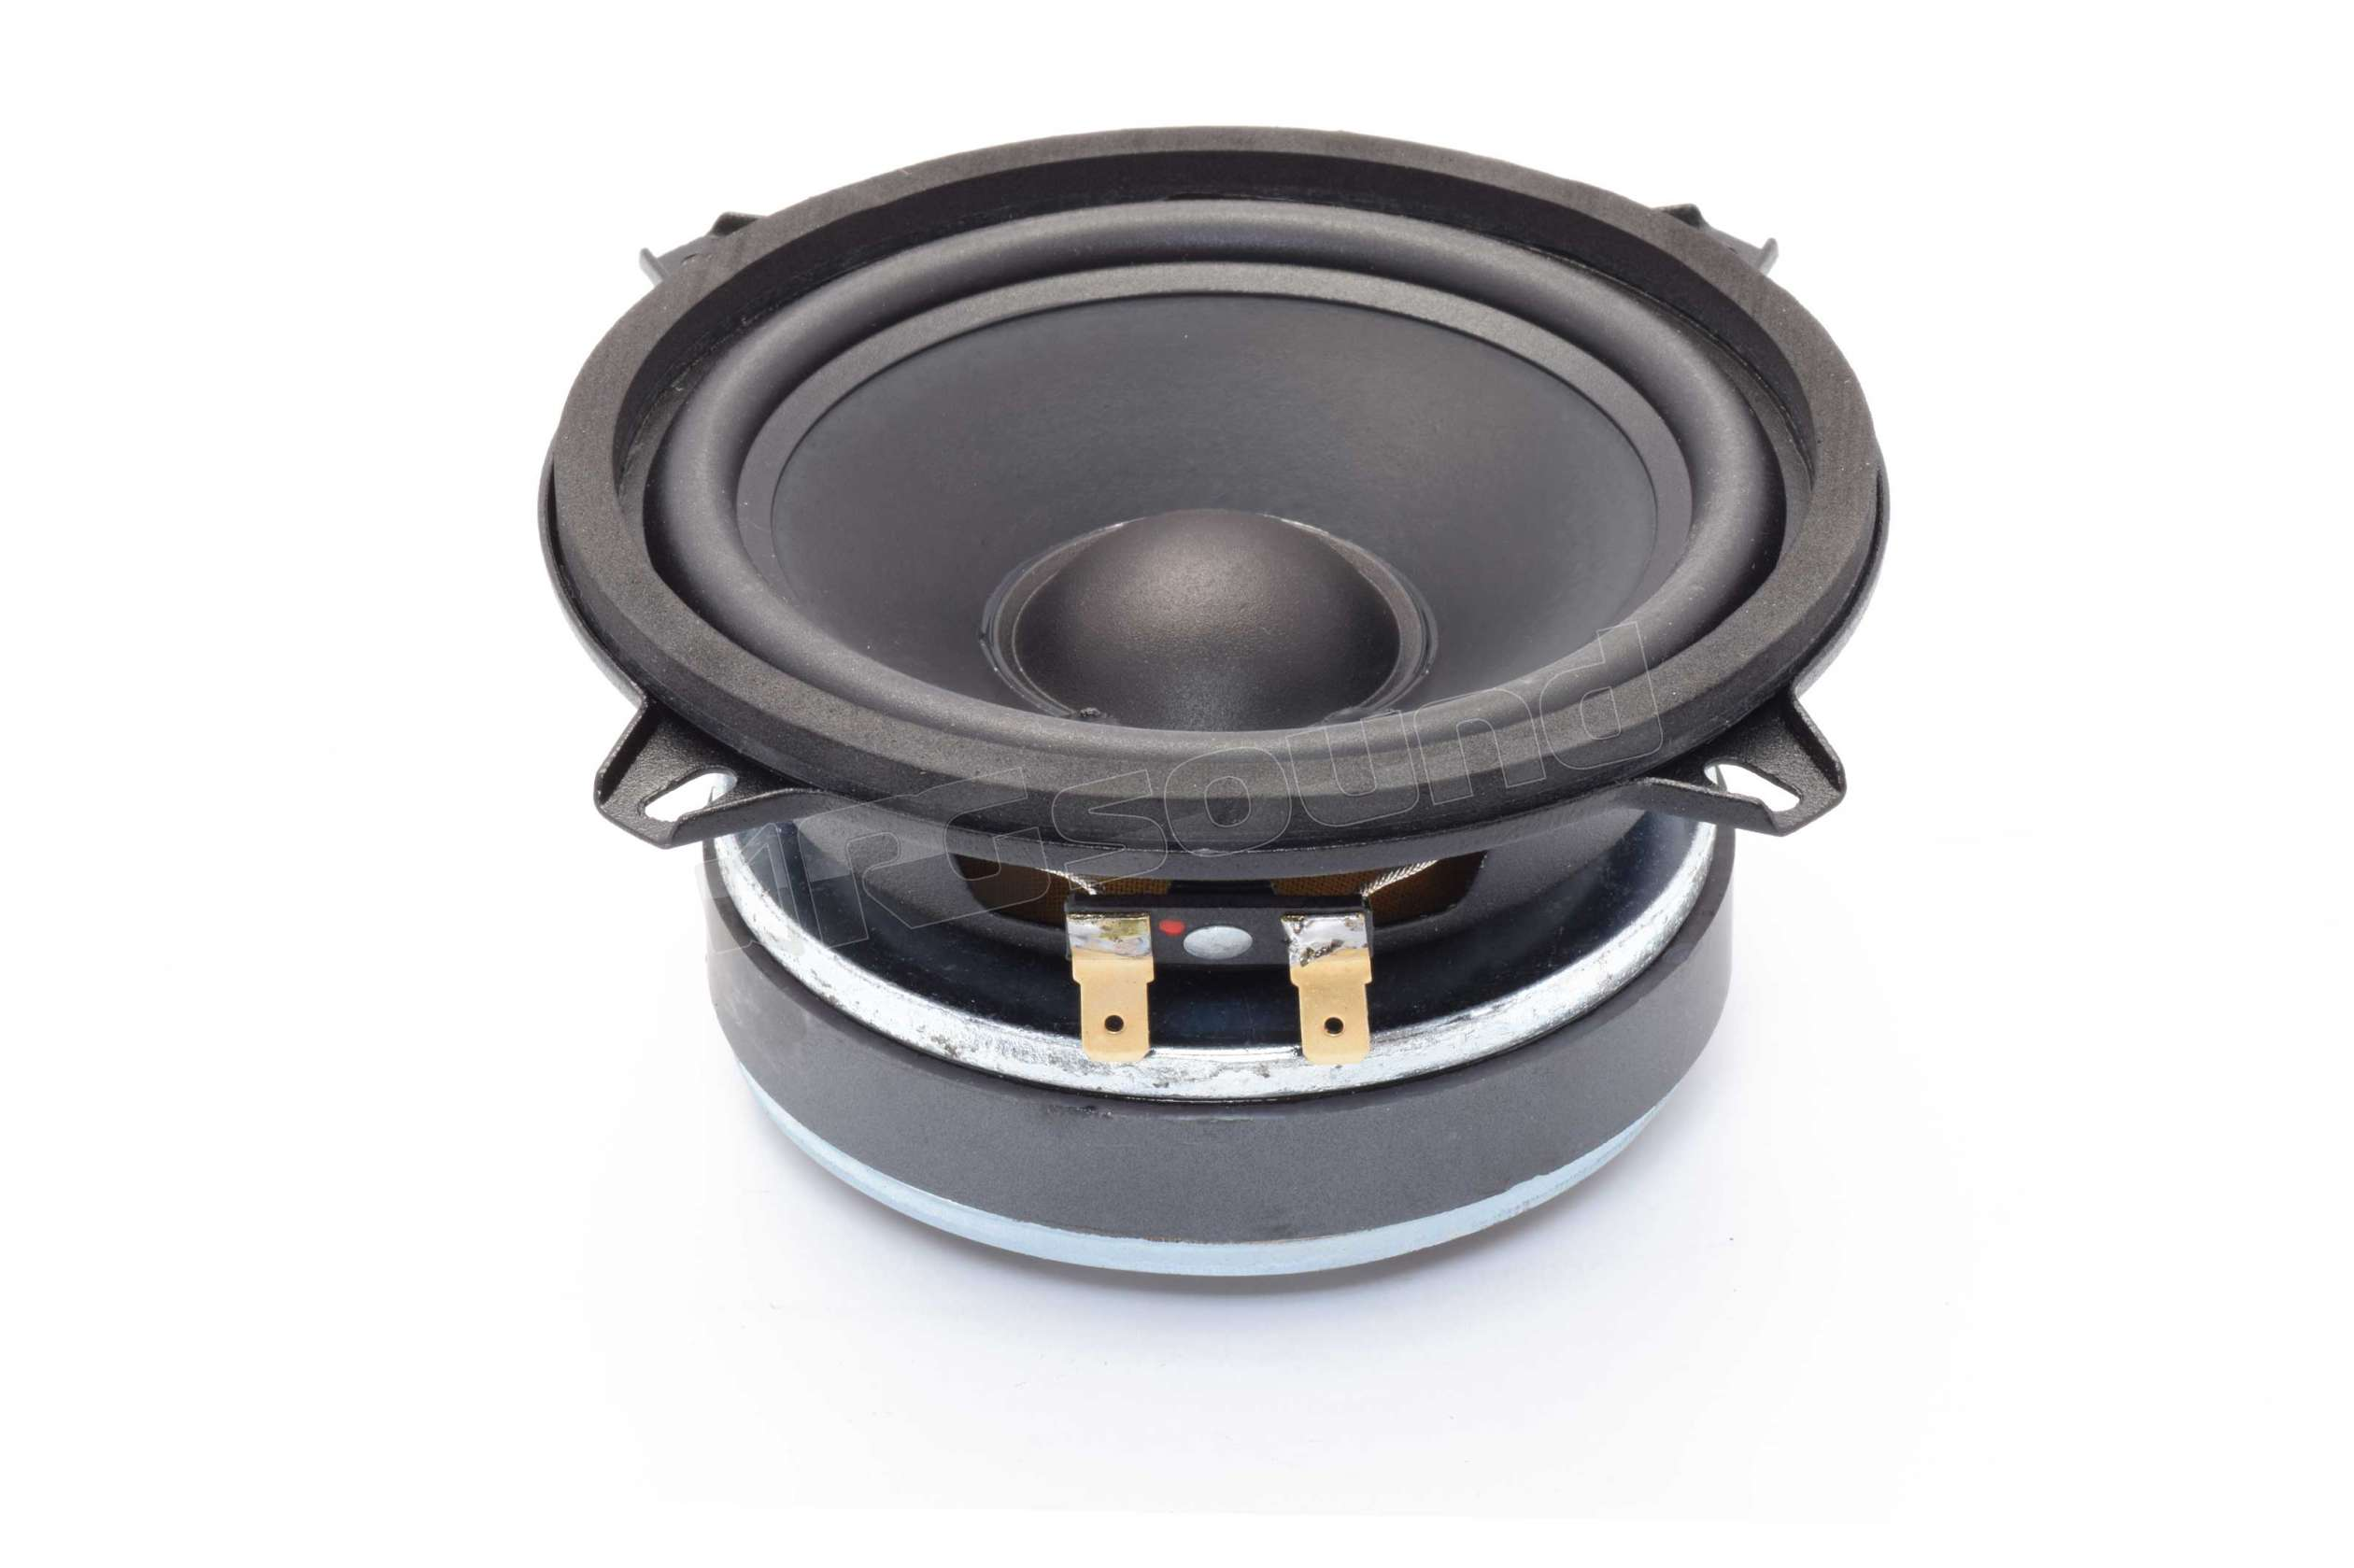 CIARE CW131 WOOFER MIDWOOFER 130 mm 4ohm 180 W